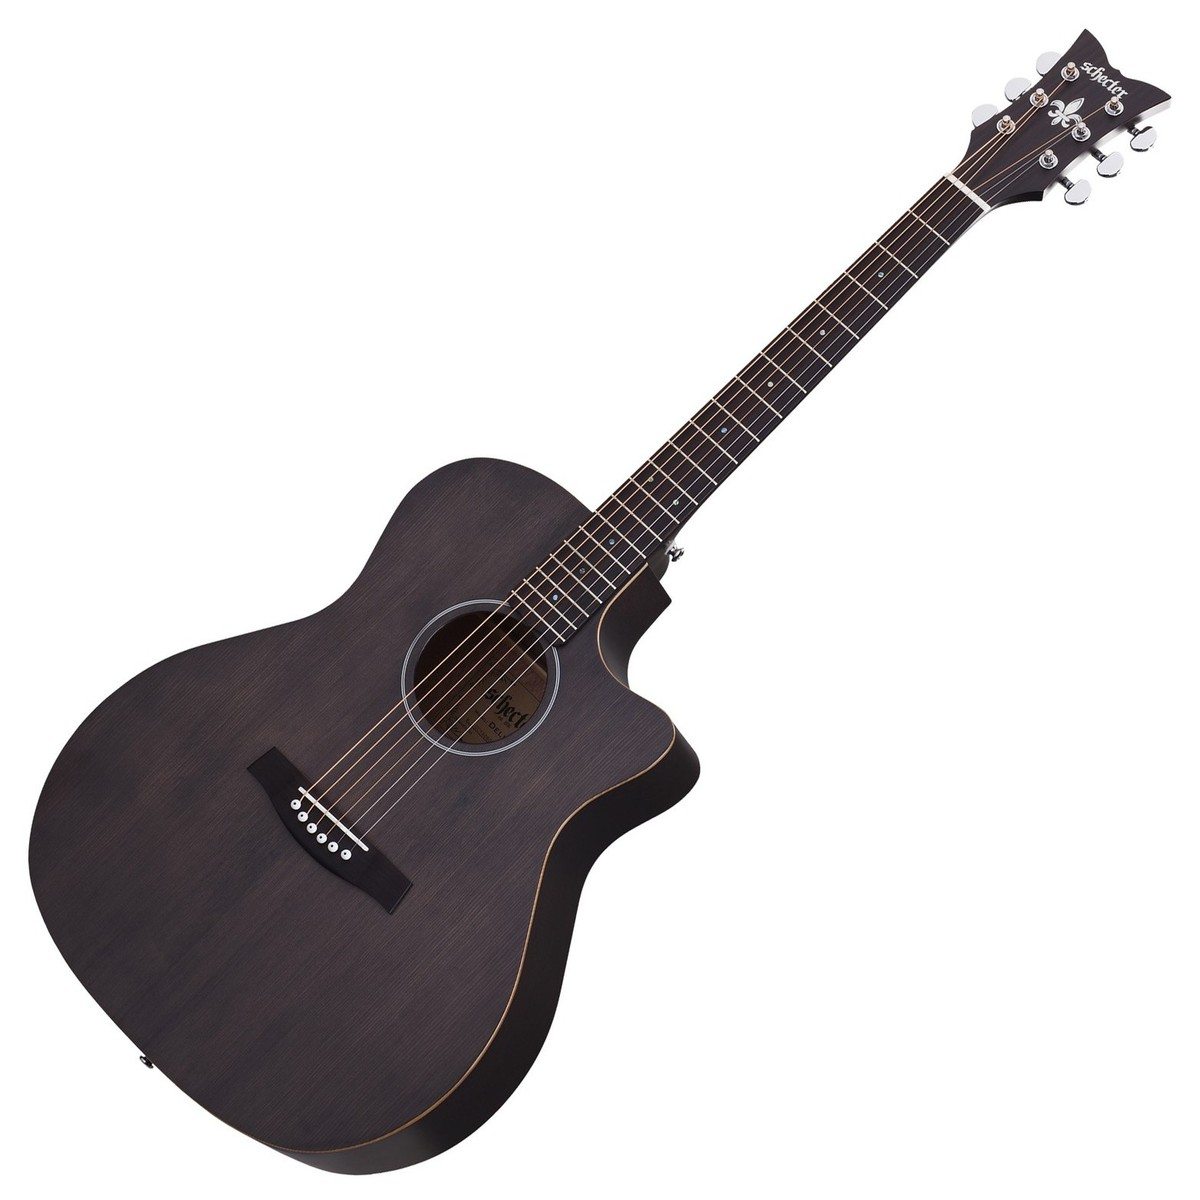 schecter deluxe acoustic guitar satin see thru black at. Black Bedroom Furniture Sets. Home Design Ideas